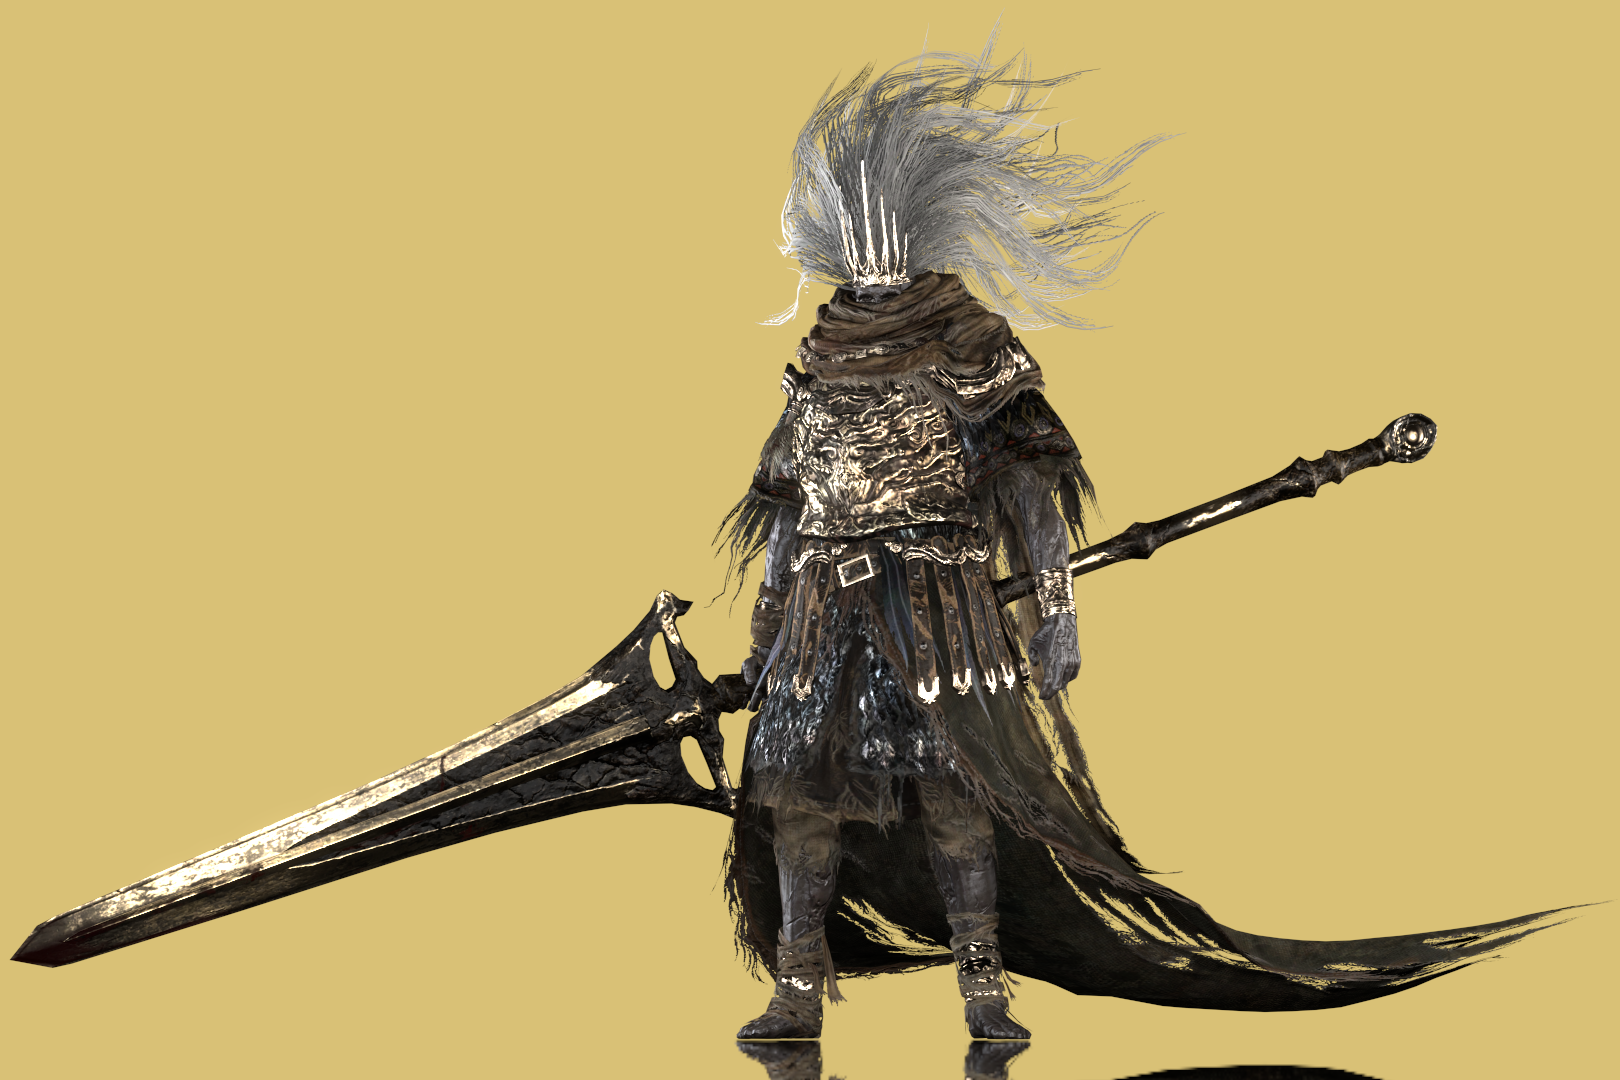 Nameless King by Yare-Yare-Dong on DeviantArt